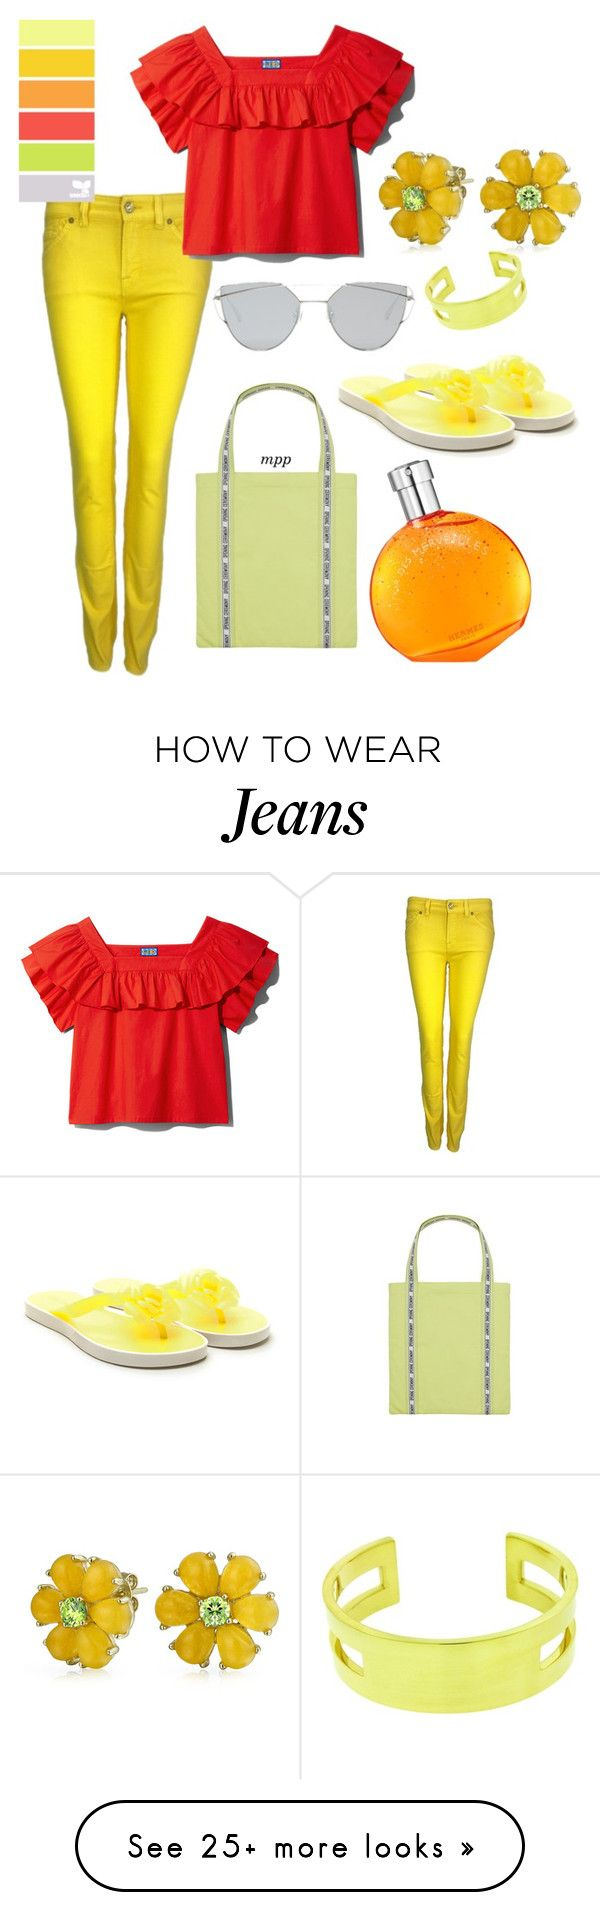 """Helping Hands"" by m-p-poppes on Polyvore featuring 7 For All Mankind, Opening Ceremony, Tiffany & Co., Gentle Monster, Bling Jewelry and Hermès"